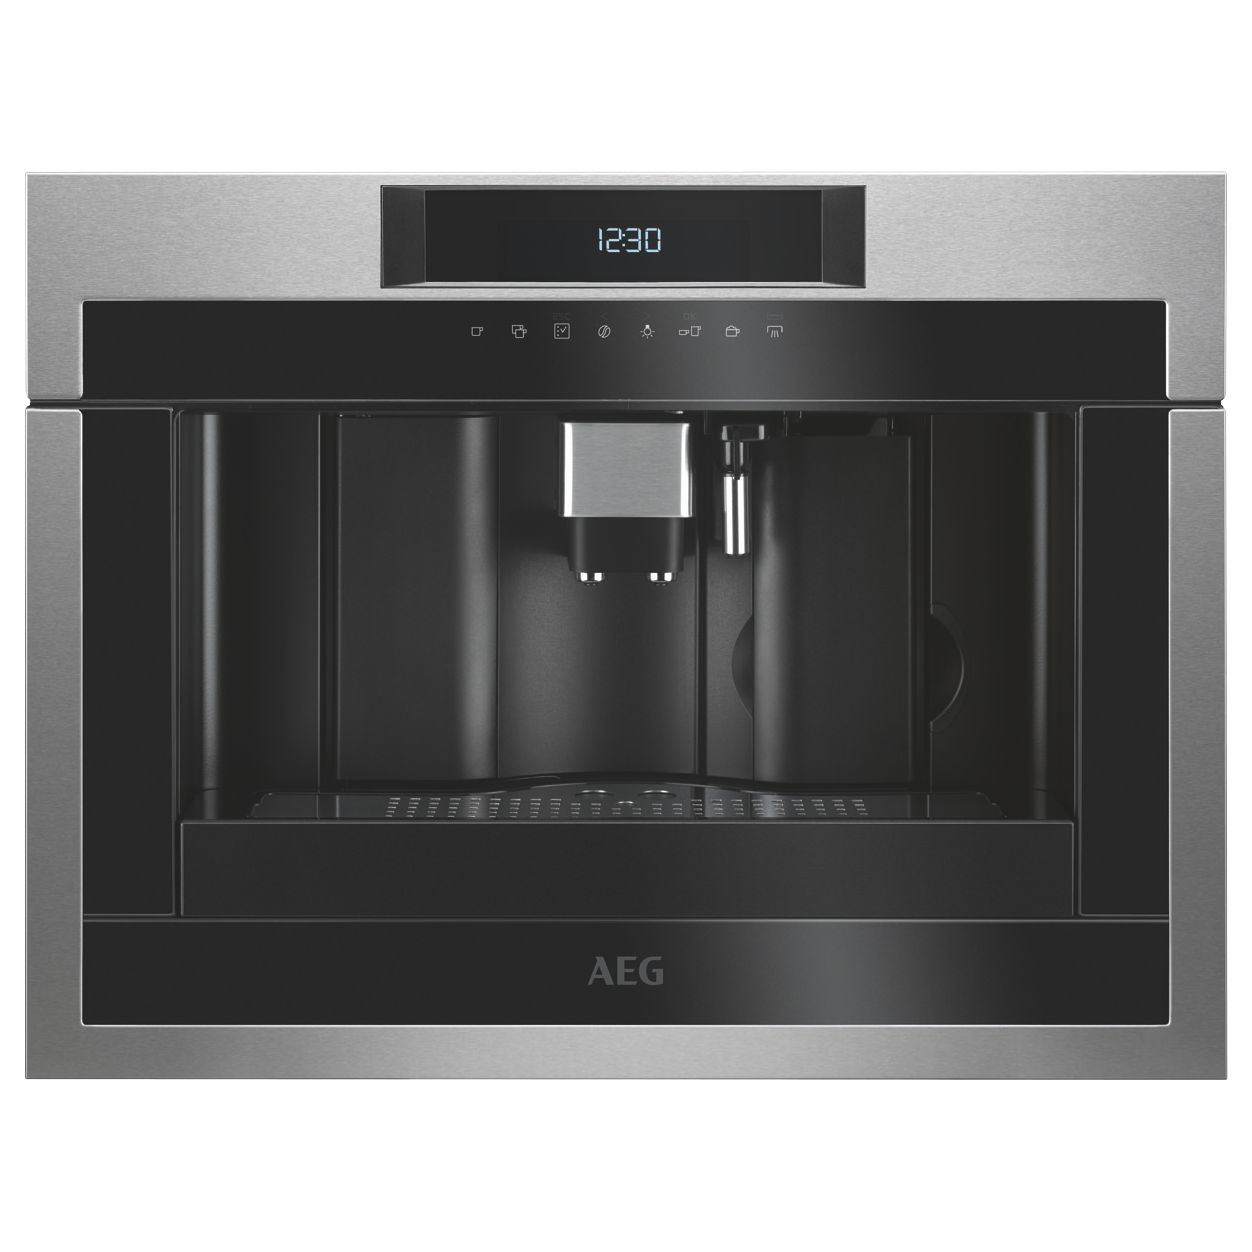 AEG AEG KKE884500 Built-In Coffee Machine, Black